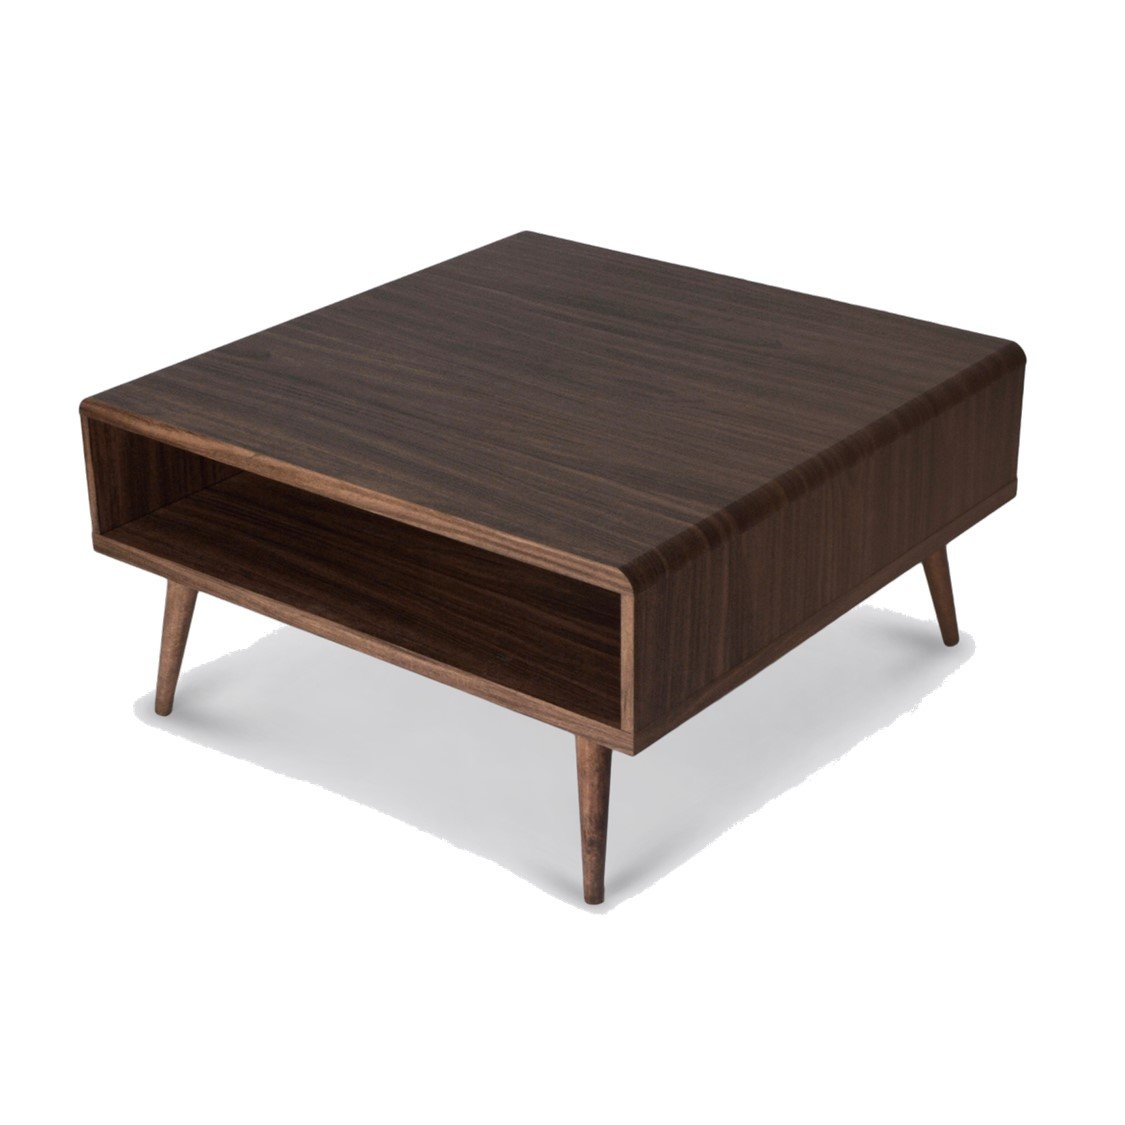 Storage Coffee Table Singapore: Cosmo Square Coffee Table By Masons Home Decor